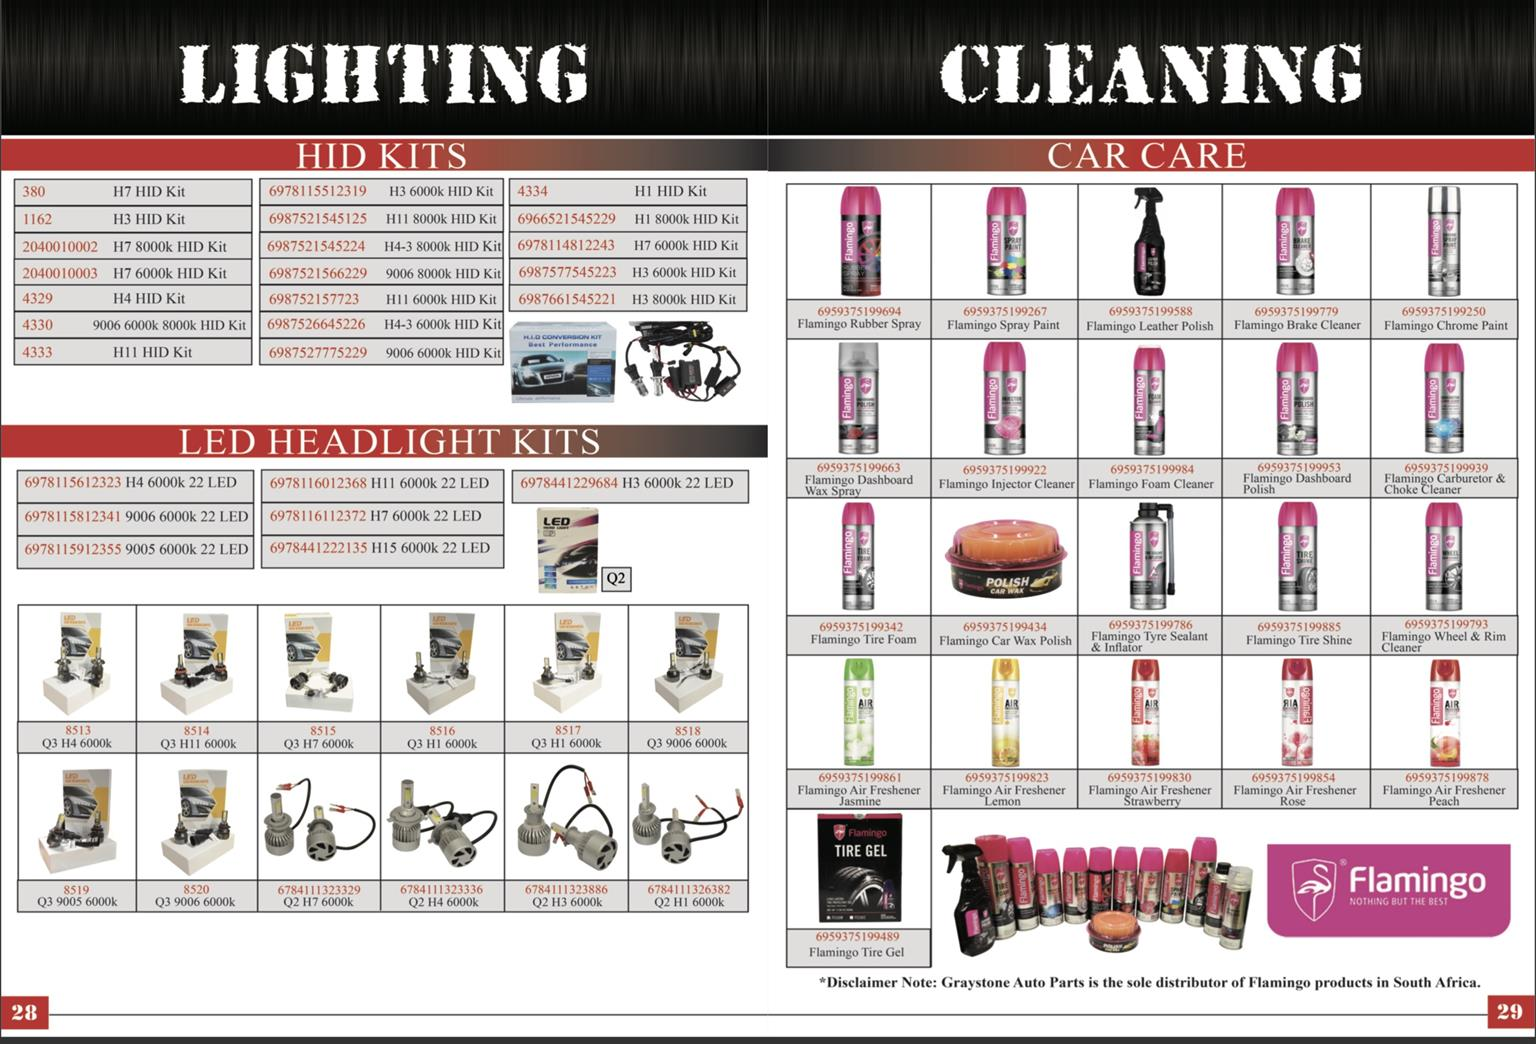 Flamingo Products available at Warehouse prices for bulk buyers